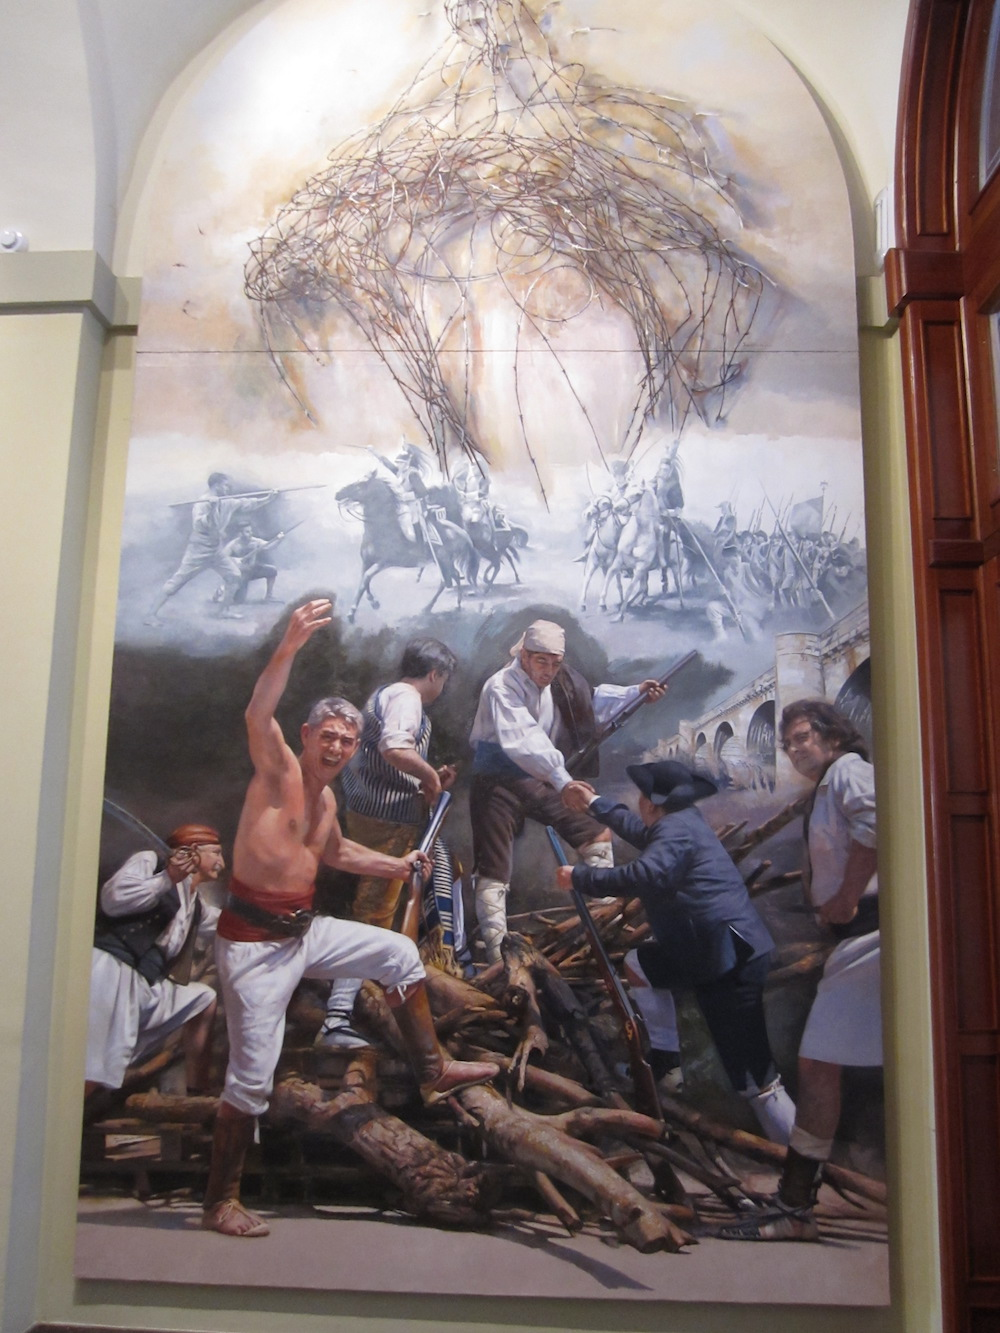 It presentes an allegory of the War of Independence and, at the same time, the herosim outburst.